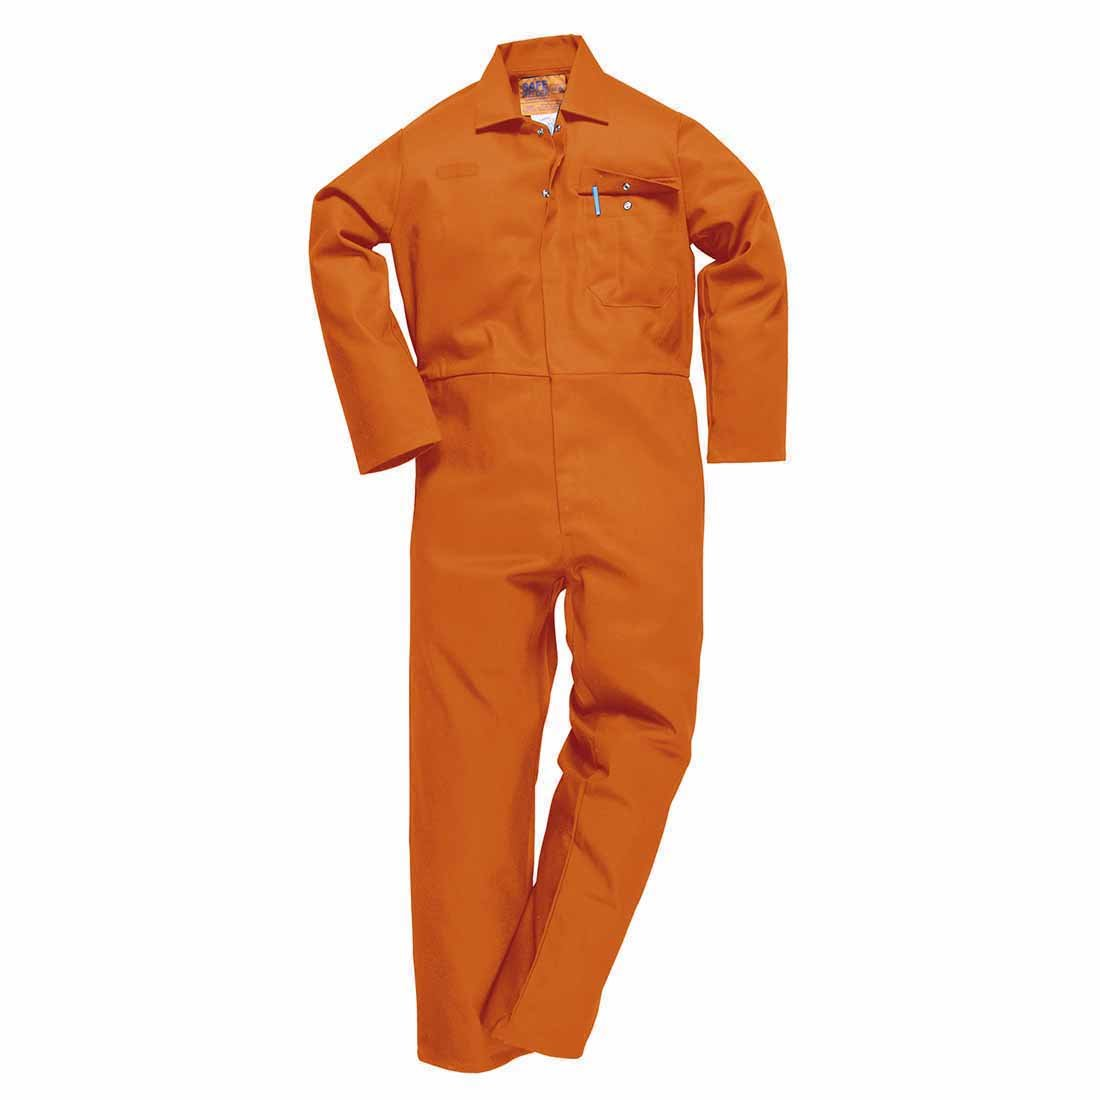 Bottle Small sUw 31 inch Leg CE Safe-Welder Workwear Coverall Boilersuit